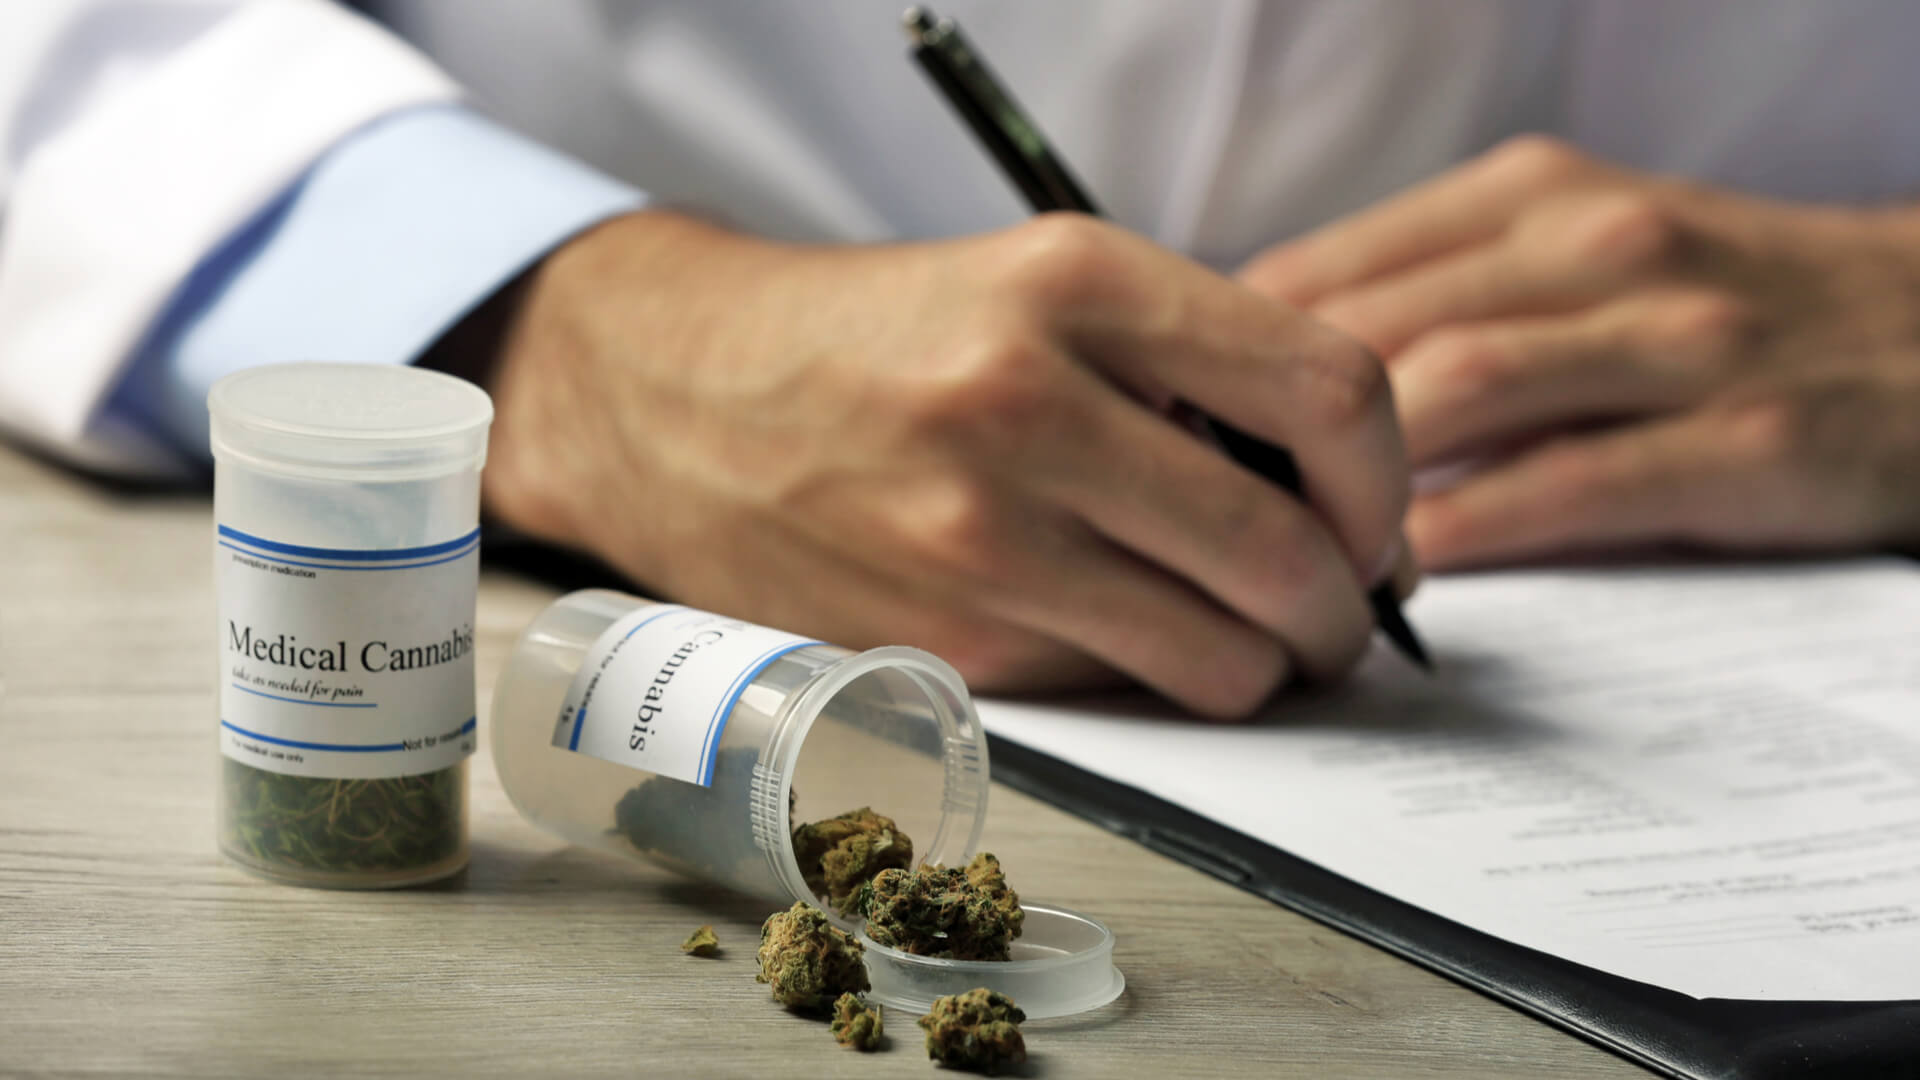 Doctor writing on prescription blank with a bottle of medical cannabis next to him